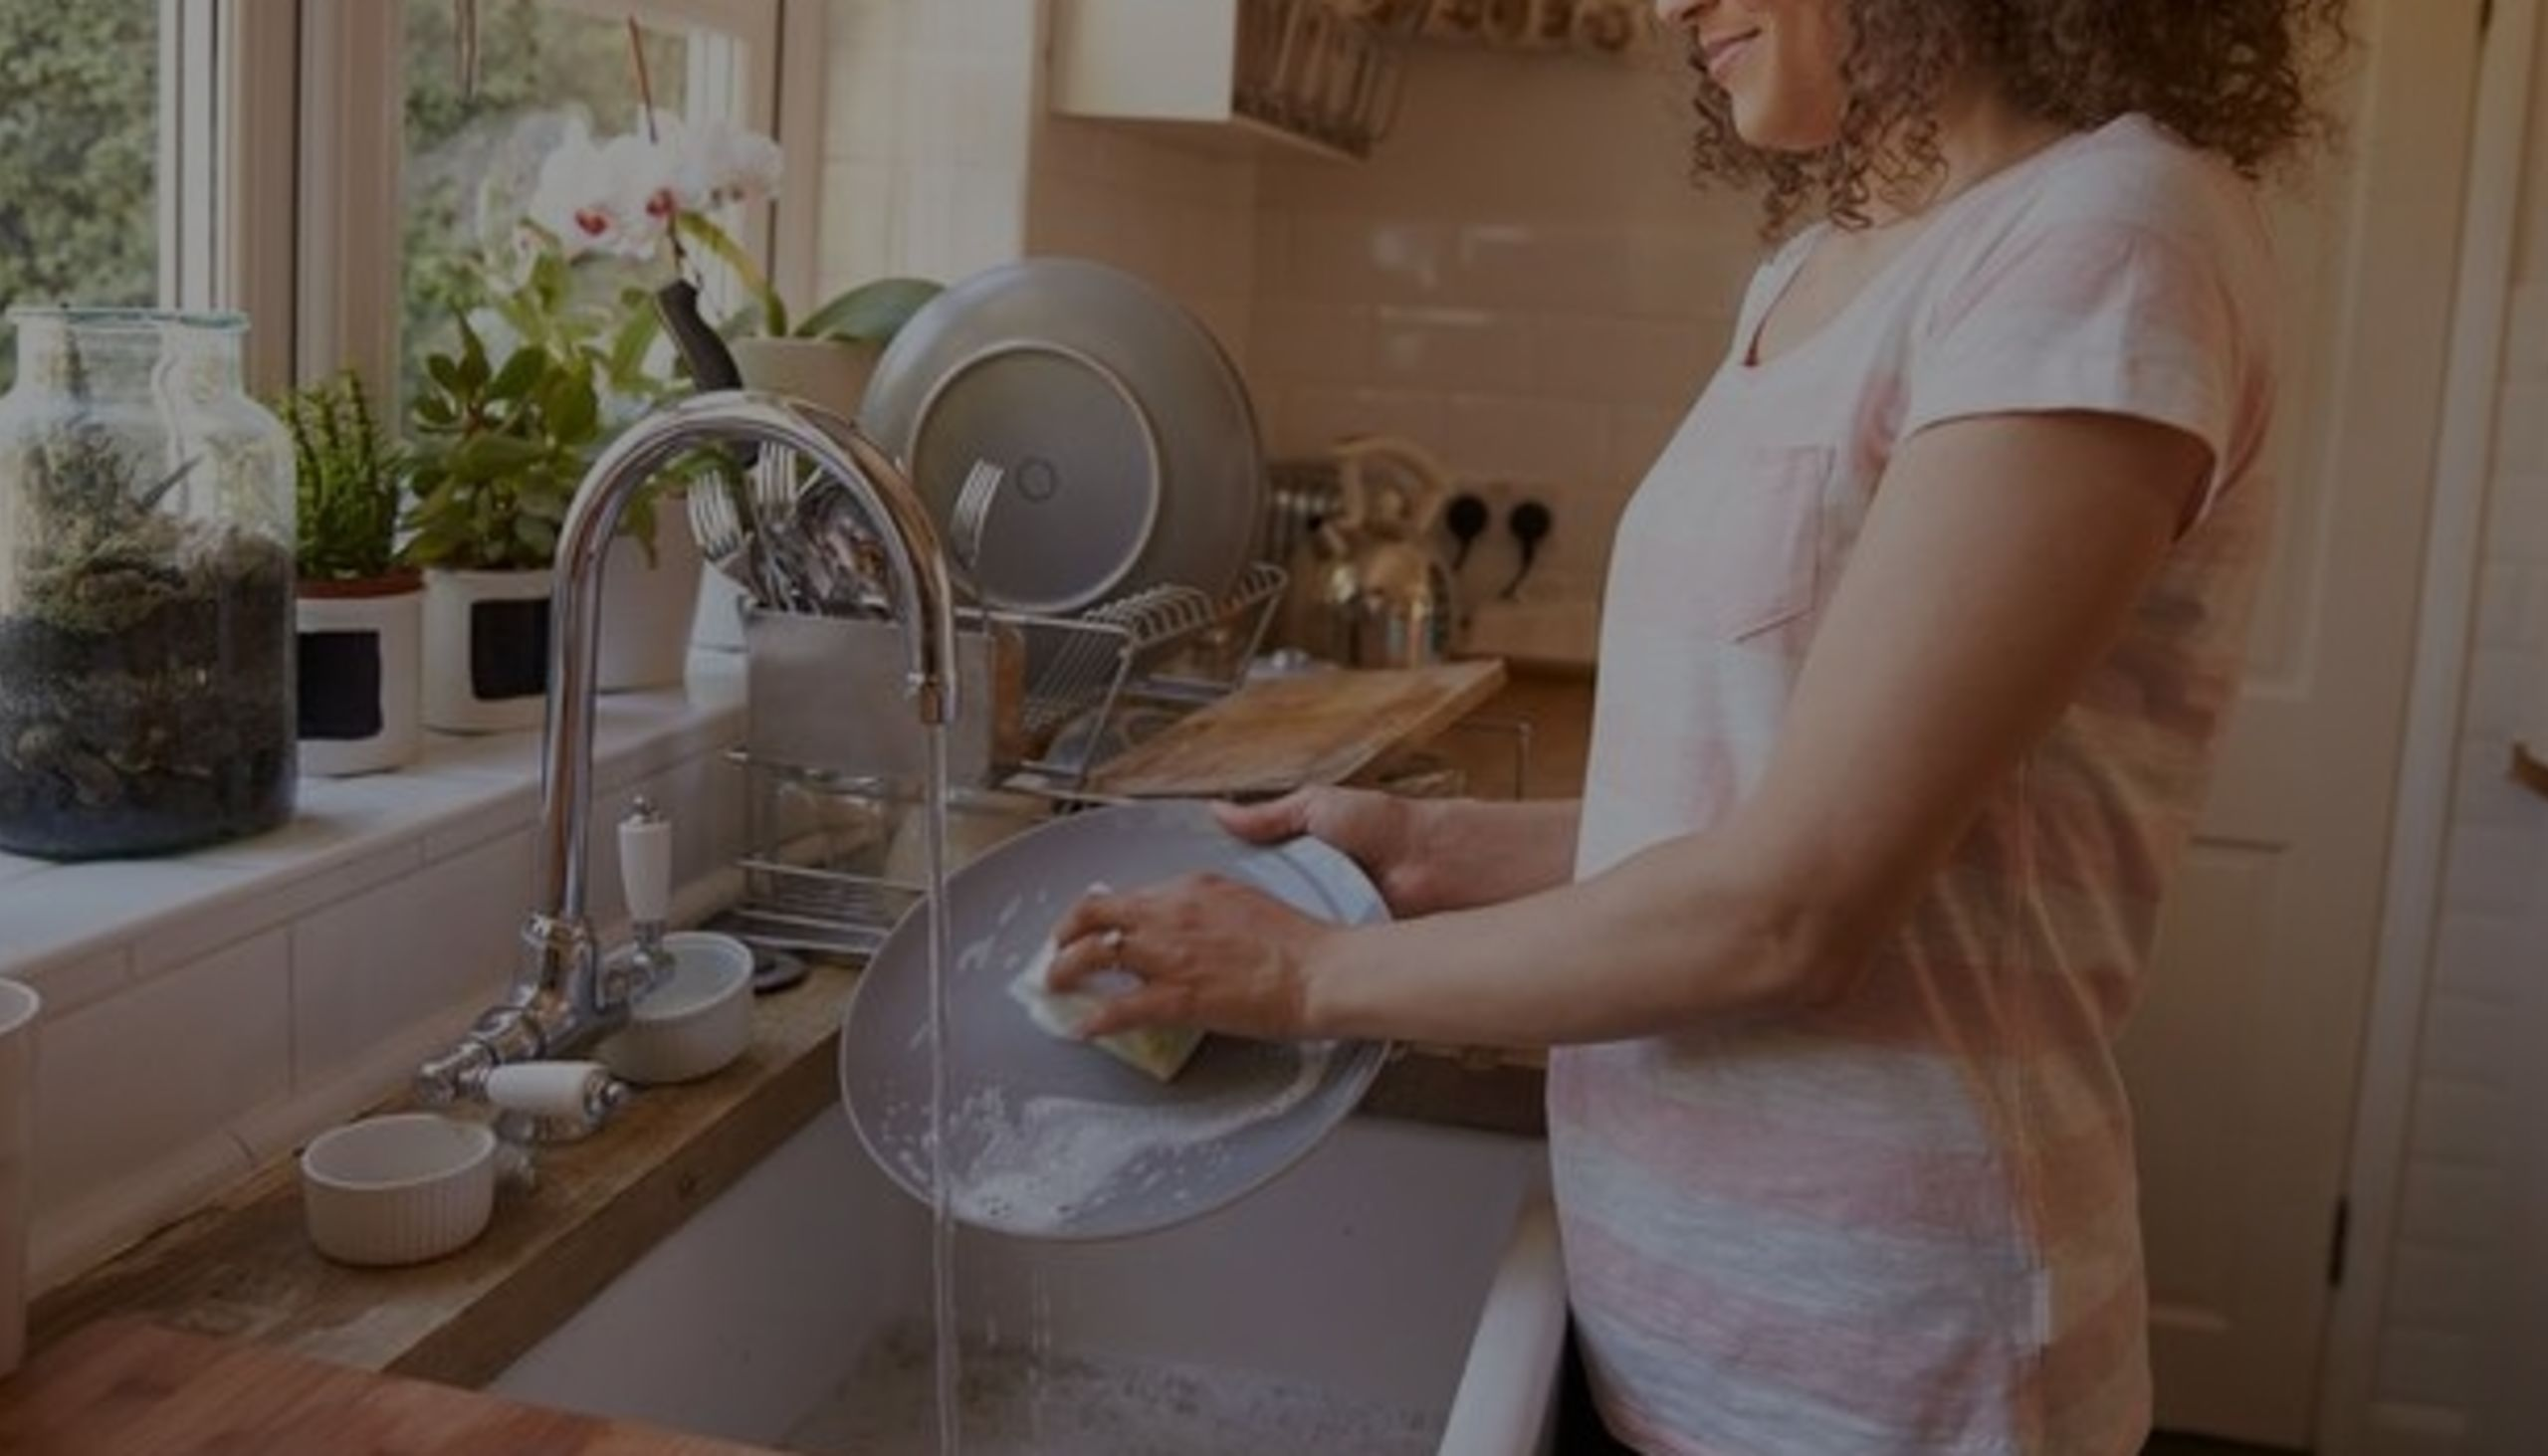 9 Home Cleaning Myths That Could Be Wrecking Your House